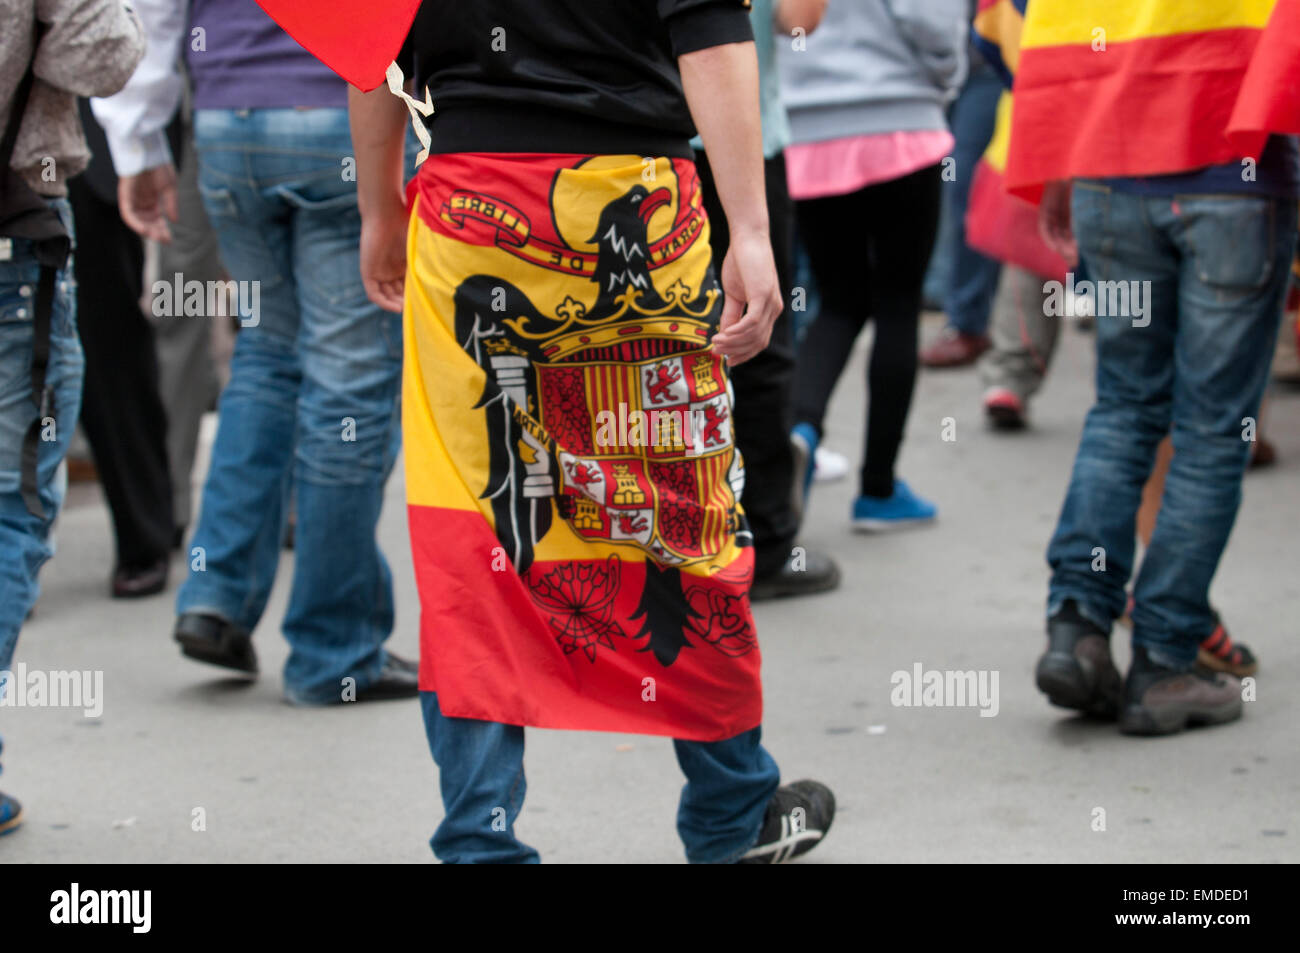 Barcelona, Spain. 12th Oct, 2014. Demonstrators doing the fascist salute during the Spanish Ultra Nationalism speech - Stock Image